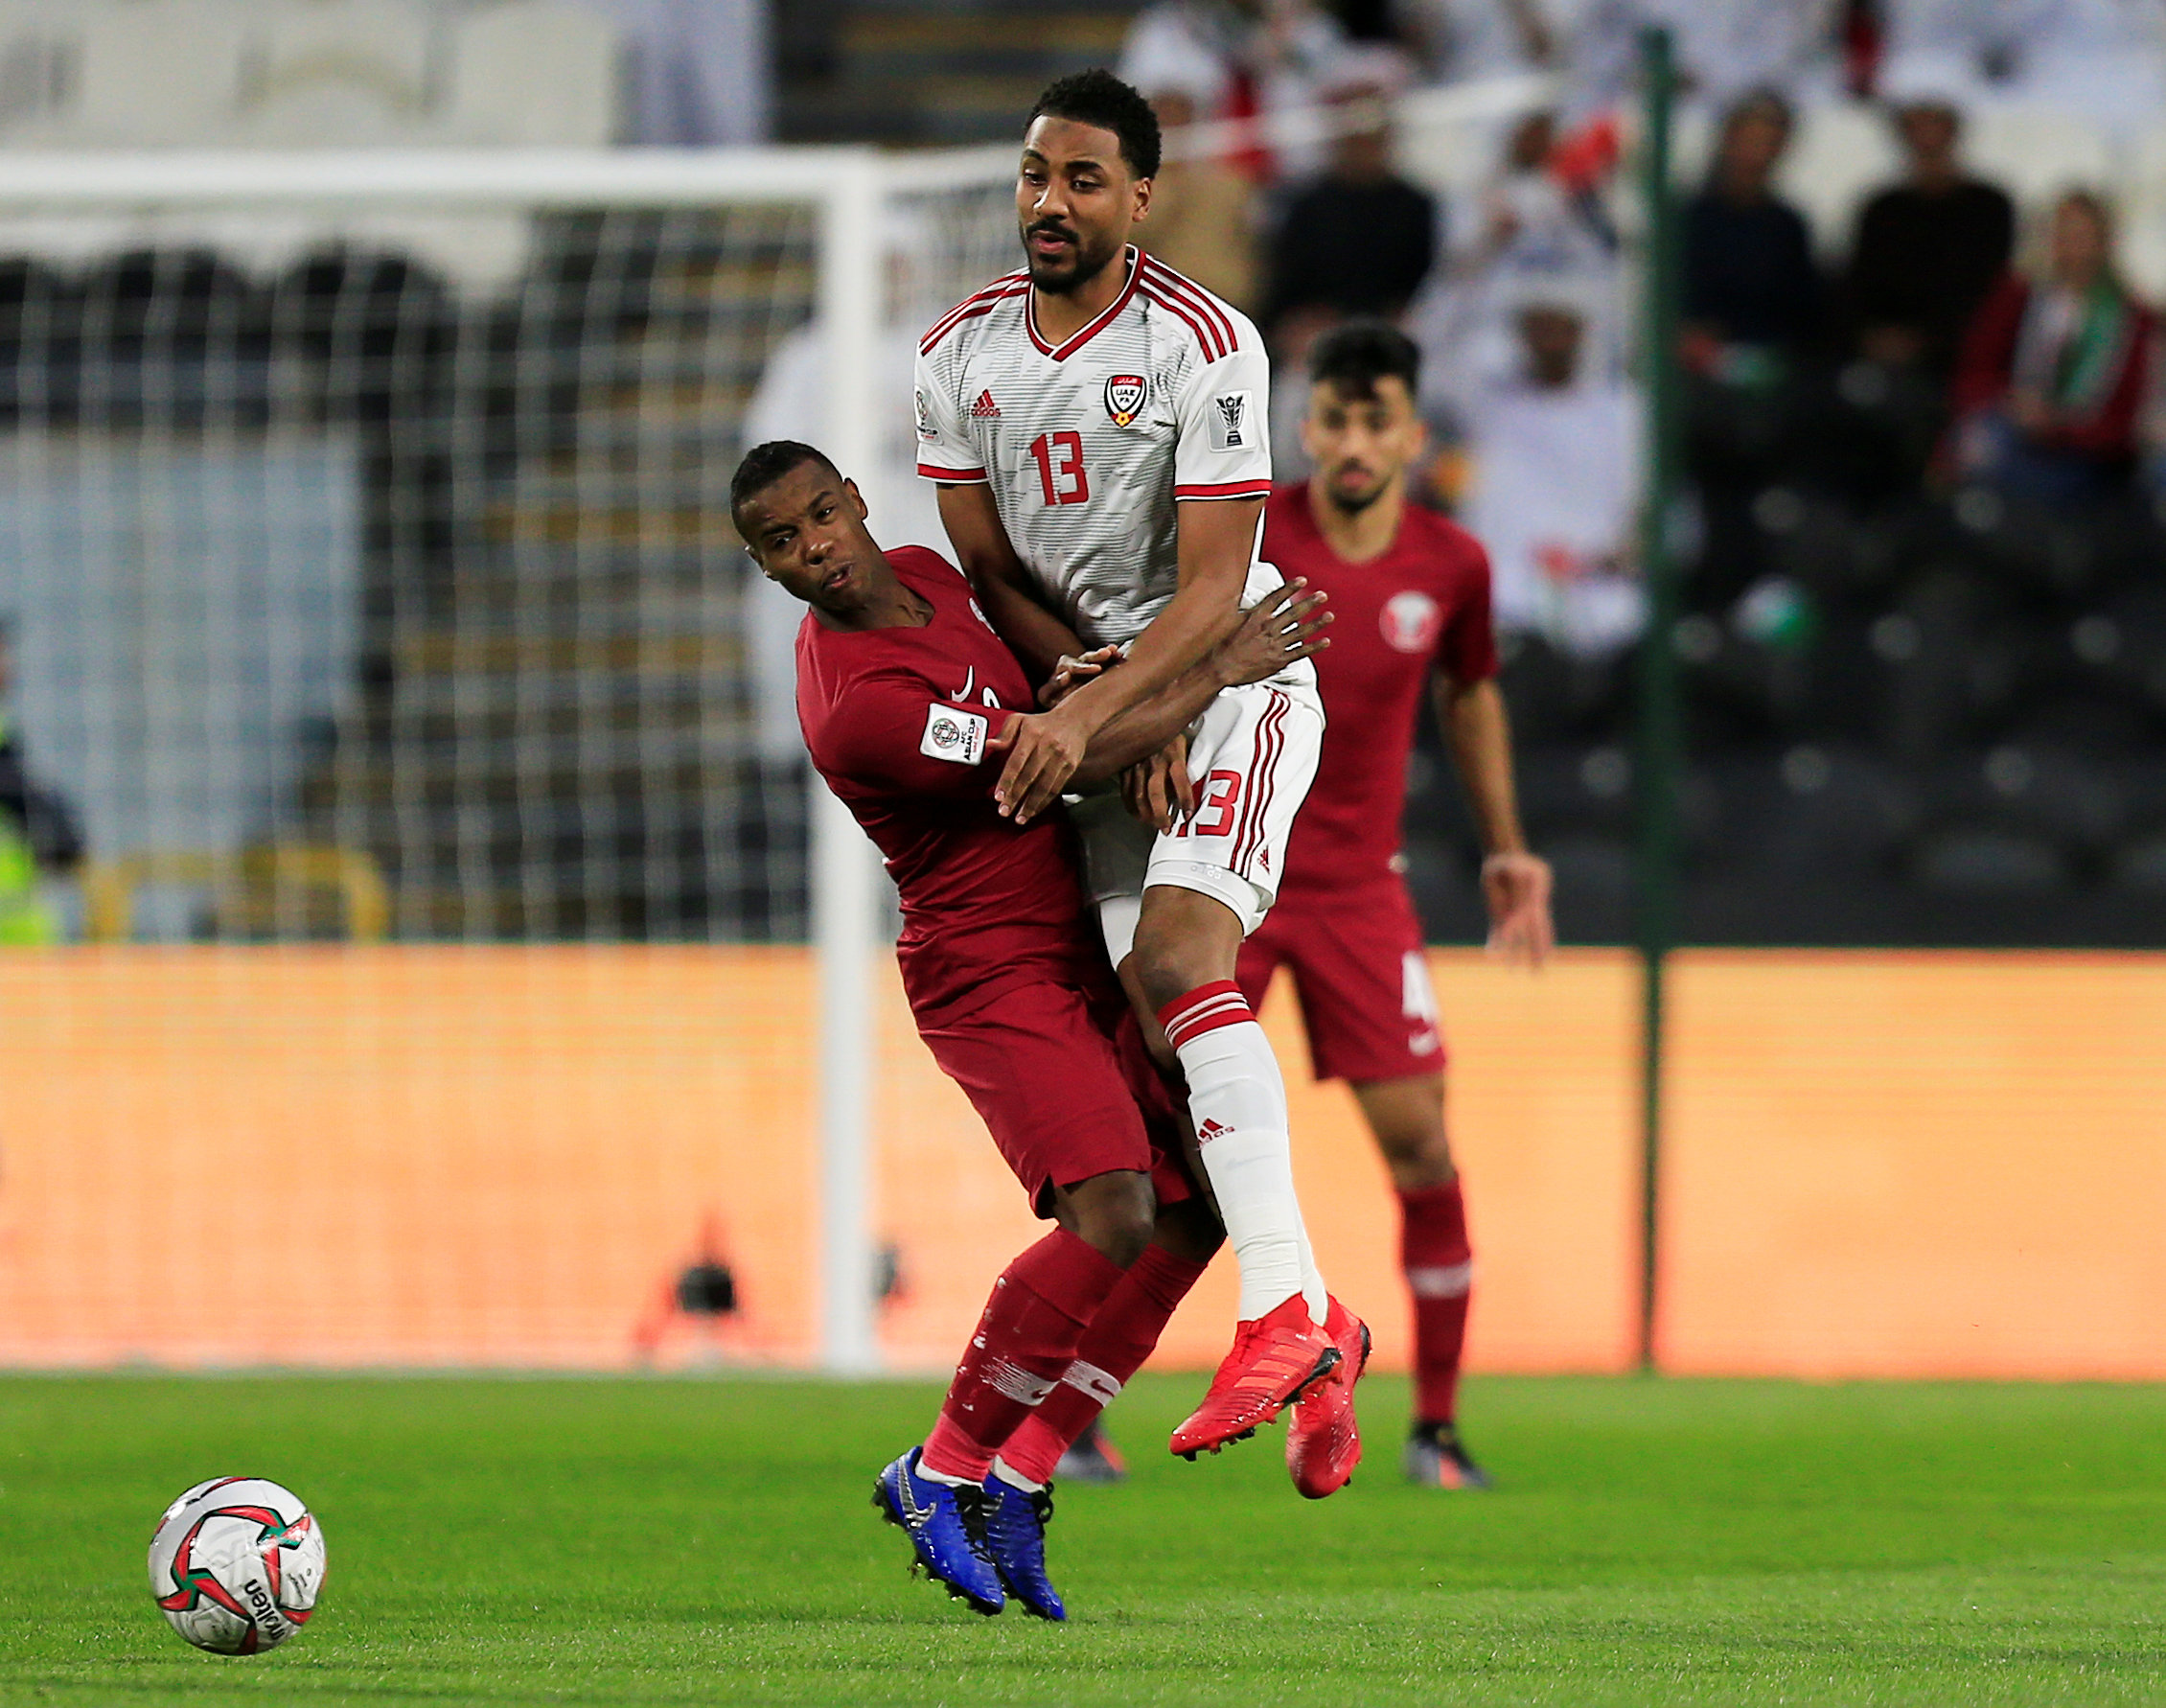 2019-01-29T141952Z_1214914881_RC178ED9F060_RTRMADP_3_SOCCER-ASIANCUP-QAT-ARE